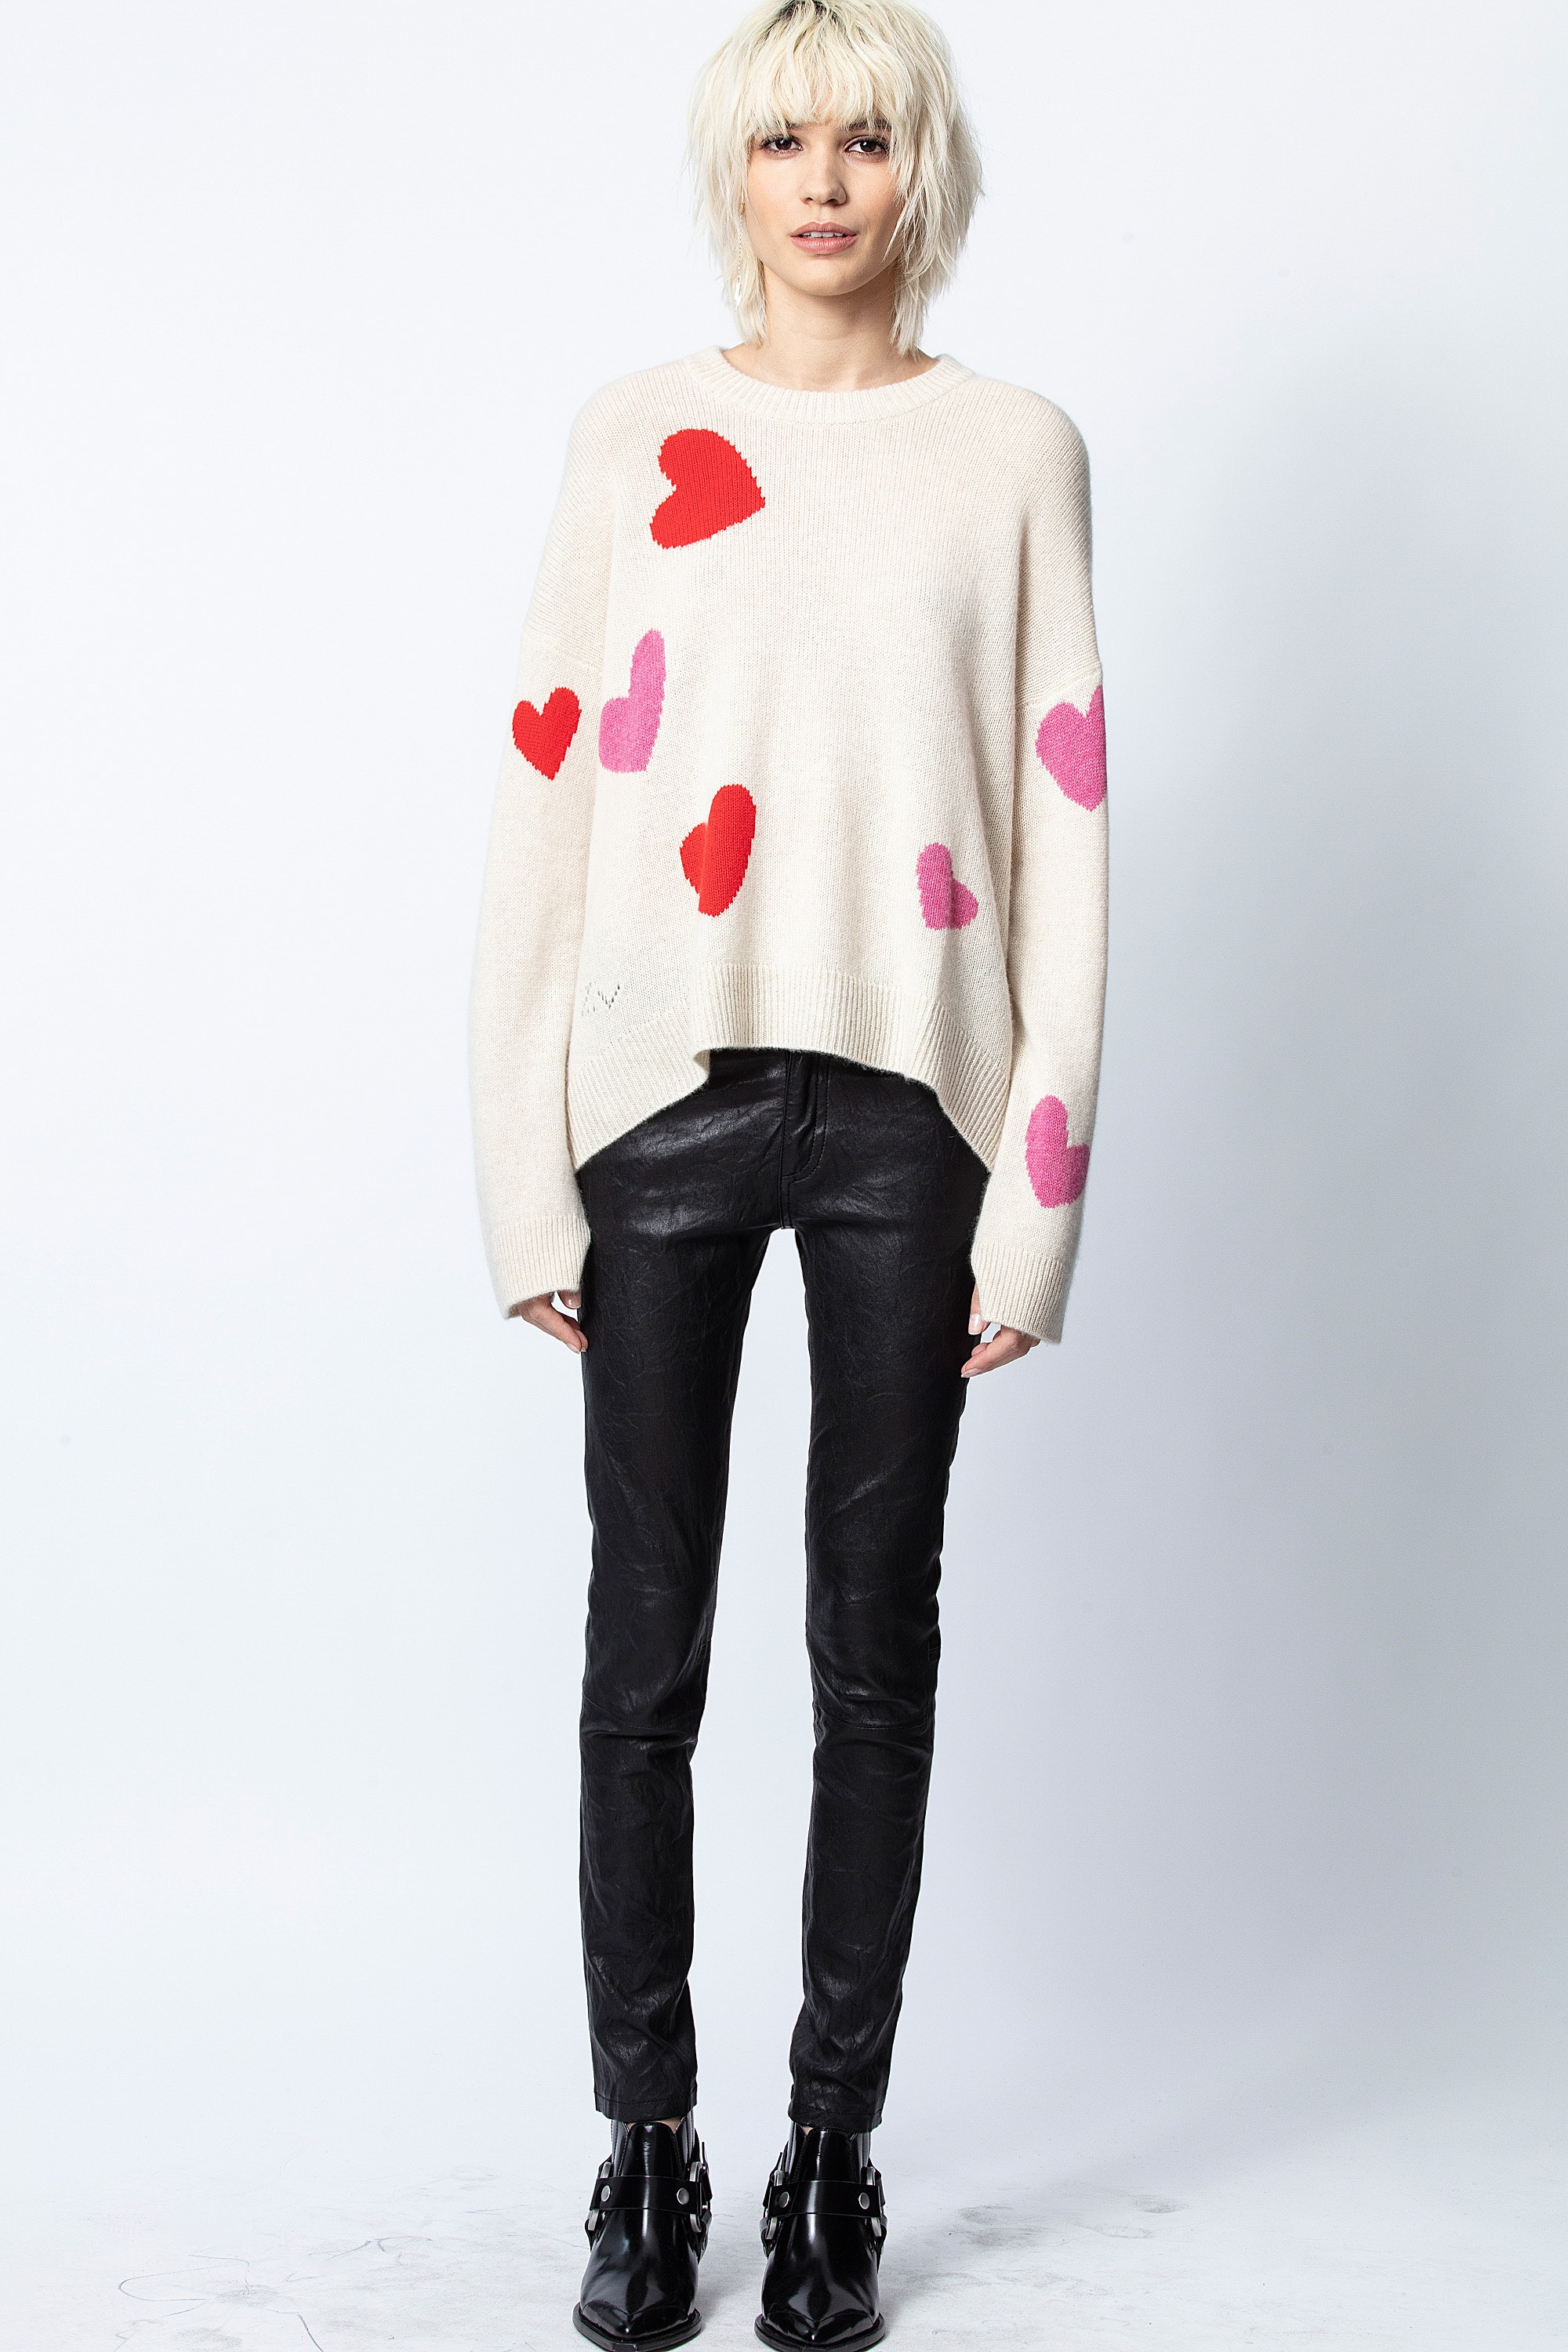 Markus Cahcemire Sweater